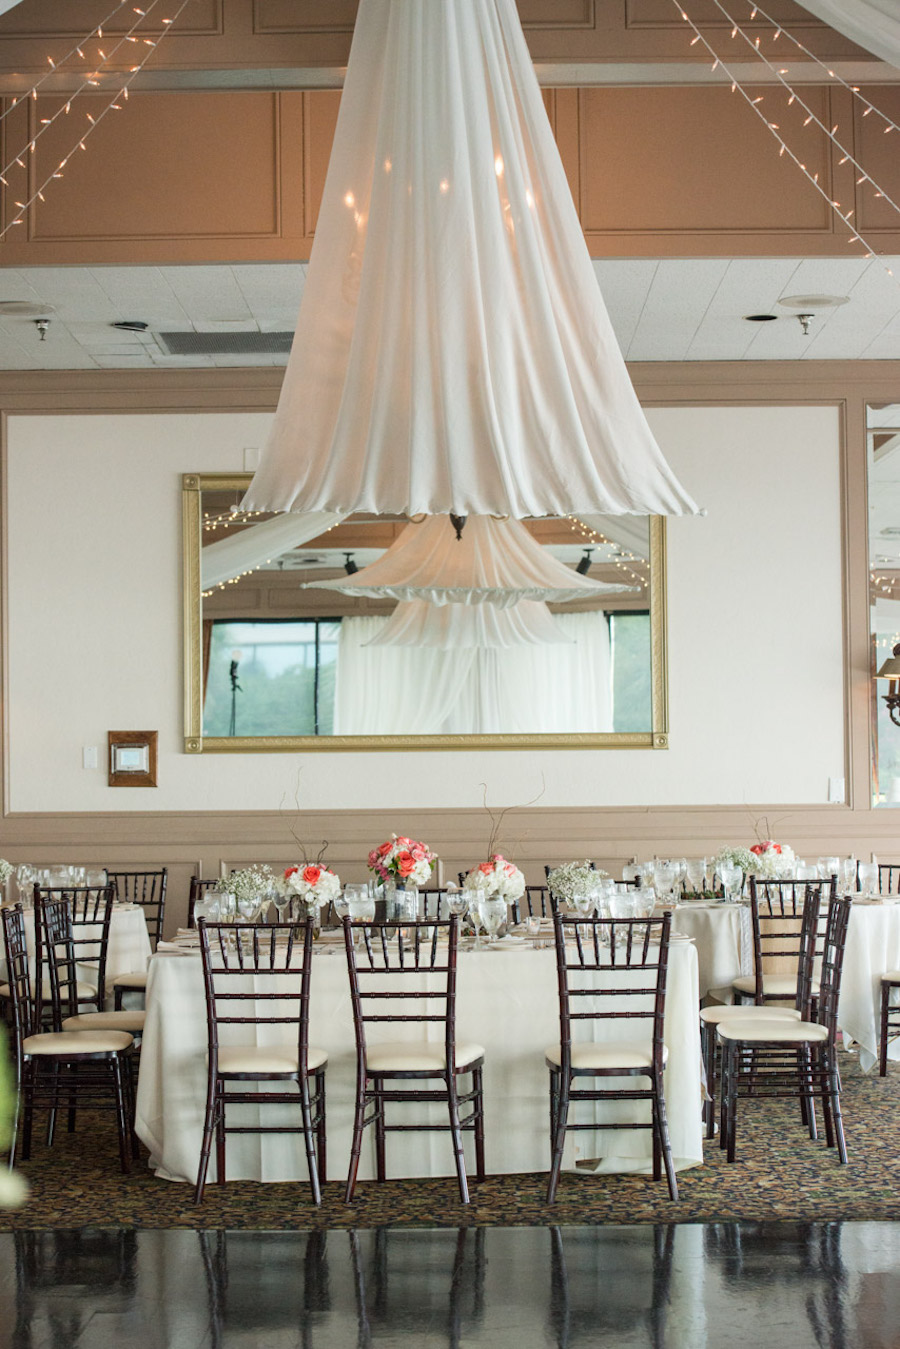 White Wedding Reception Decor with Ceiling Draping and Chiavari Chairs | Tampa Wedding Venue The Rusty Pelican